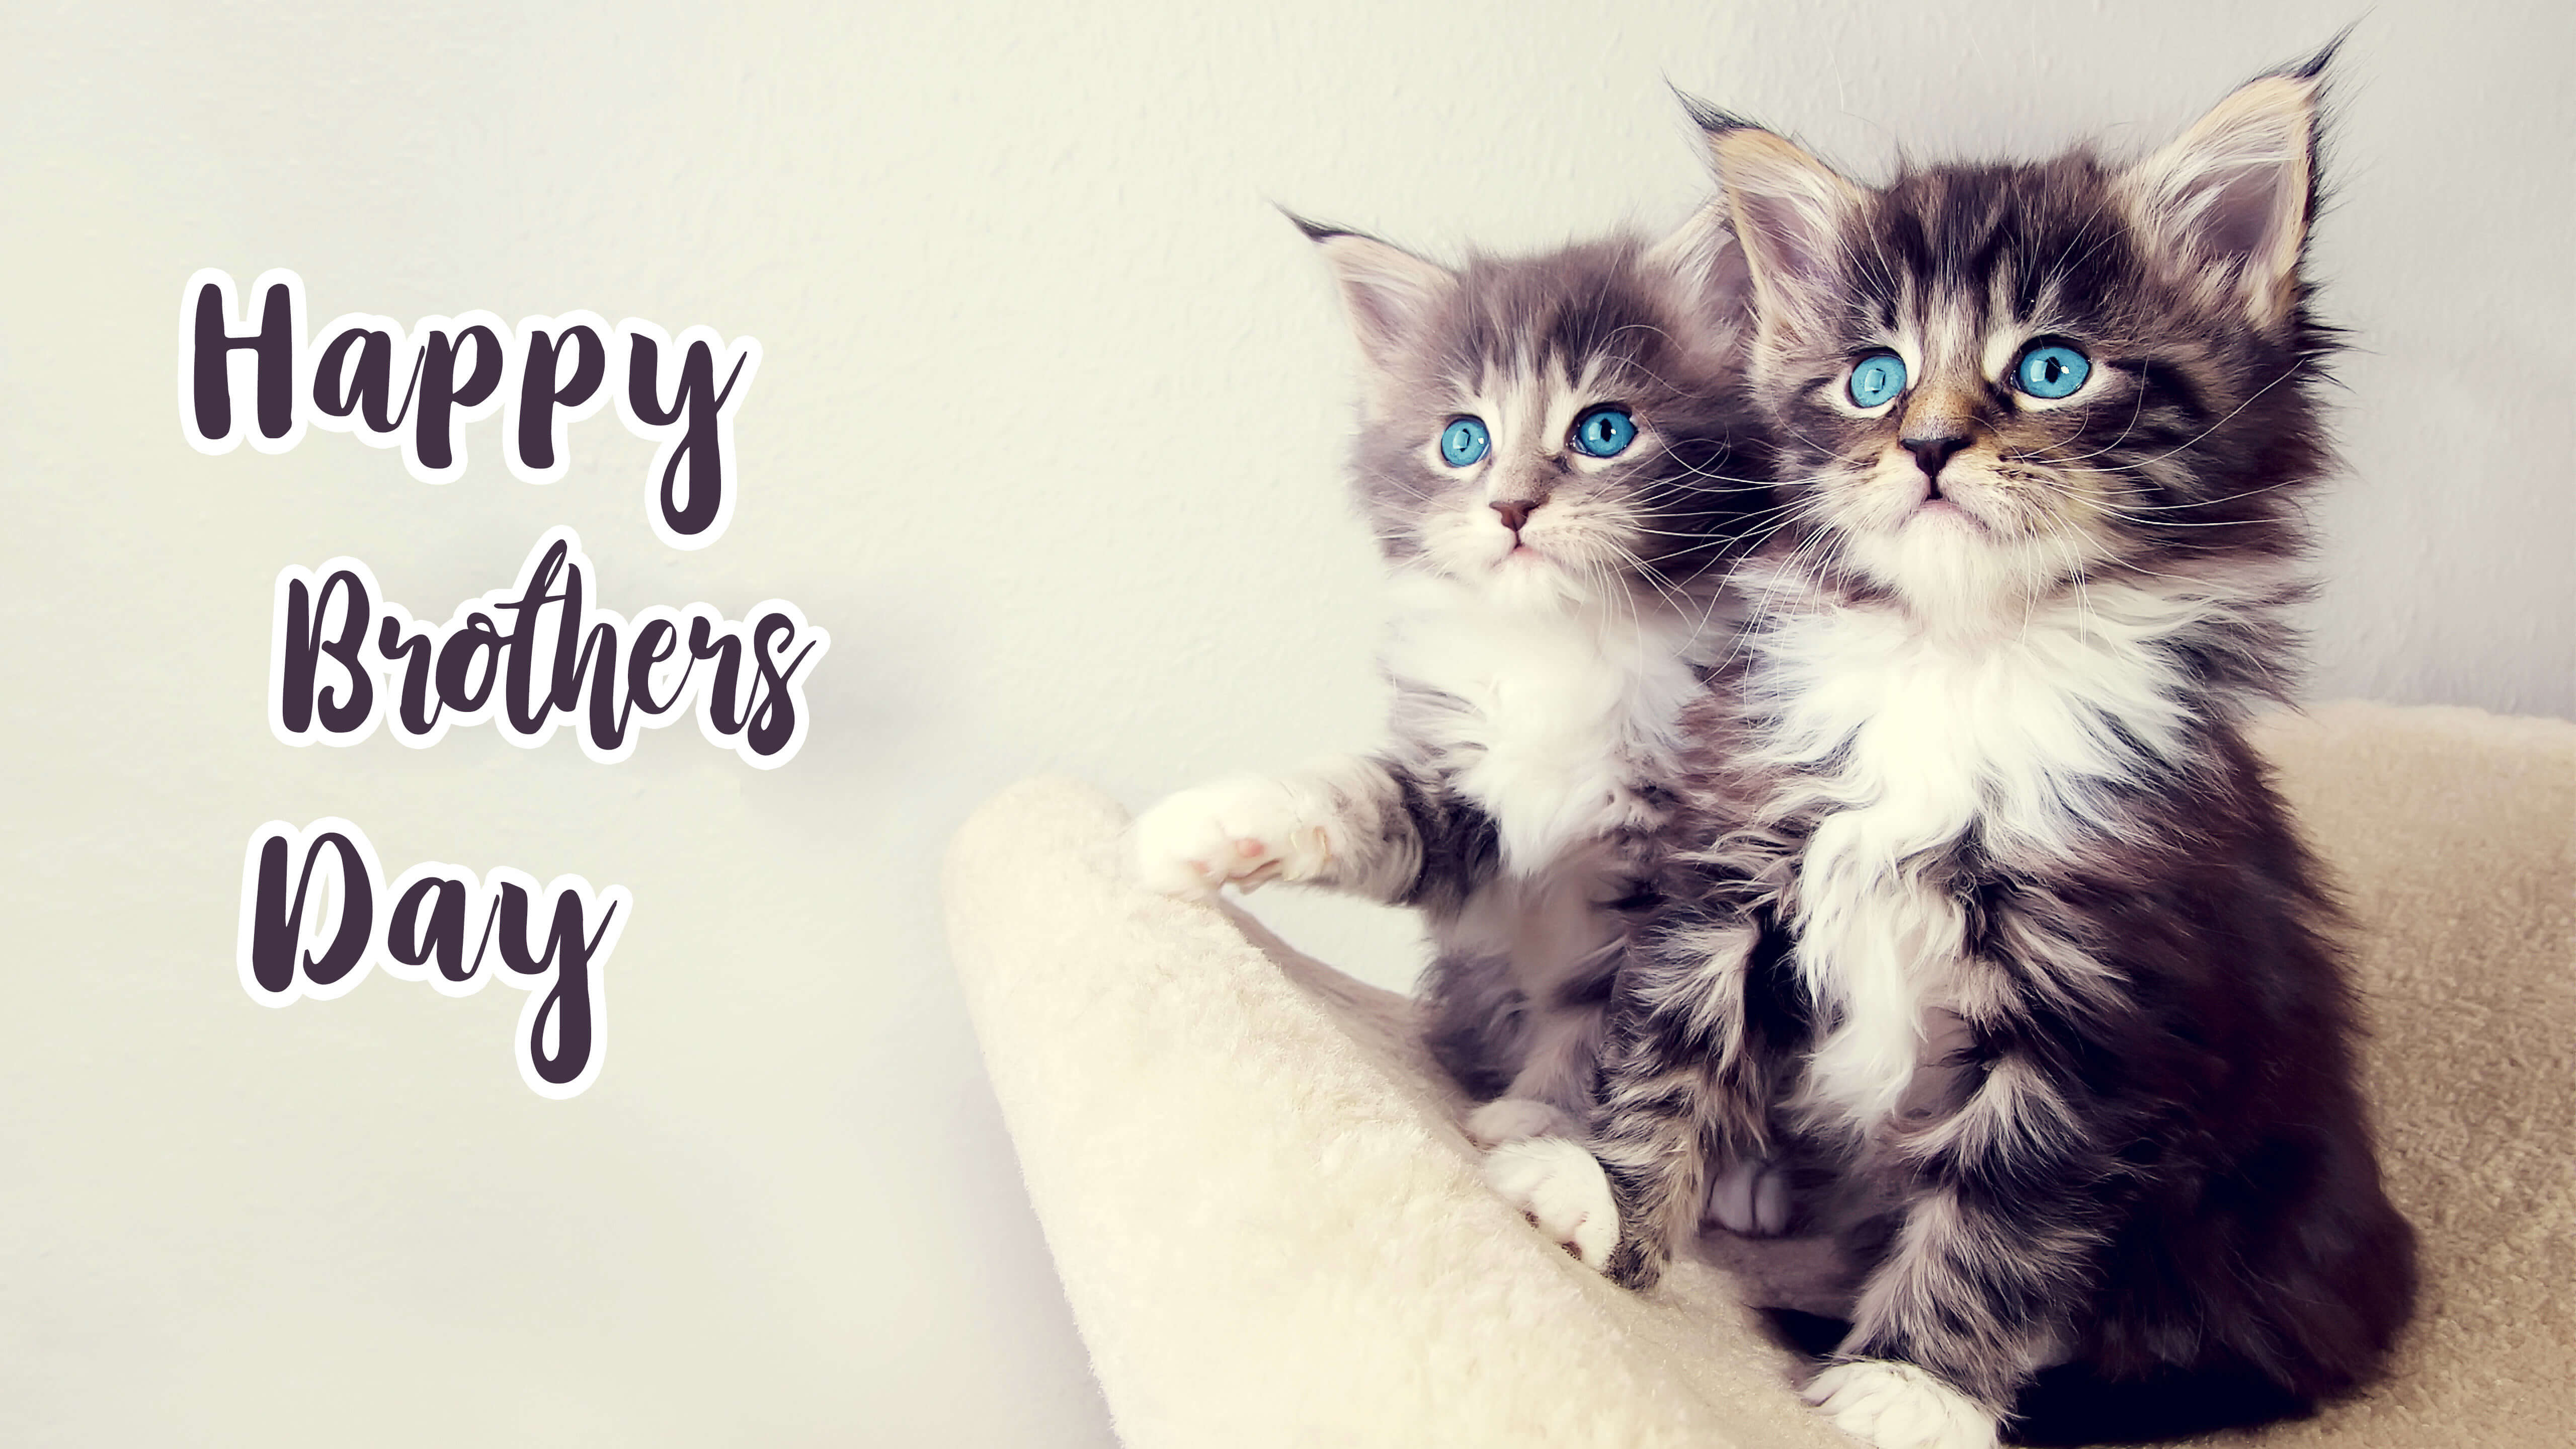 Happy Brothers Day Two Cute Kittens Cat Blue Eyes Hd Wallpaper 5120x2880